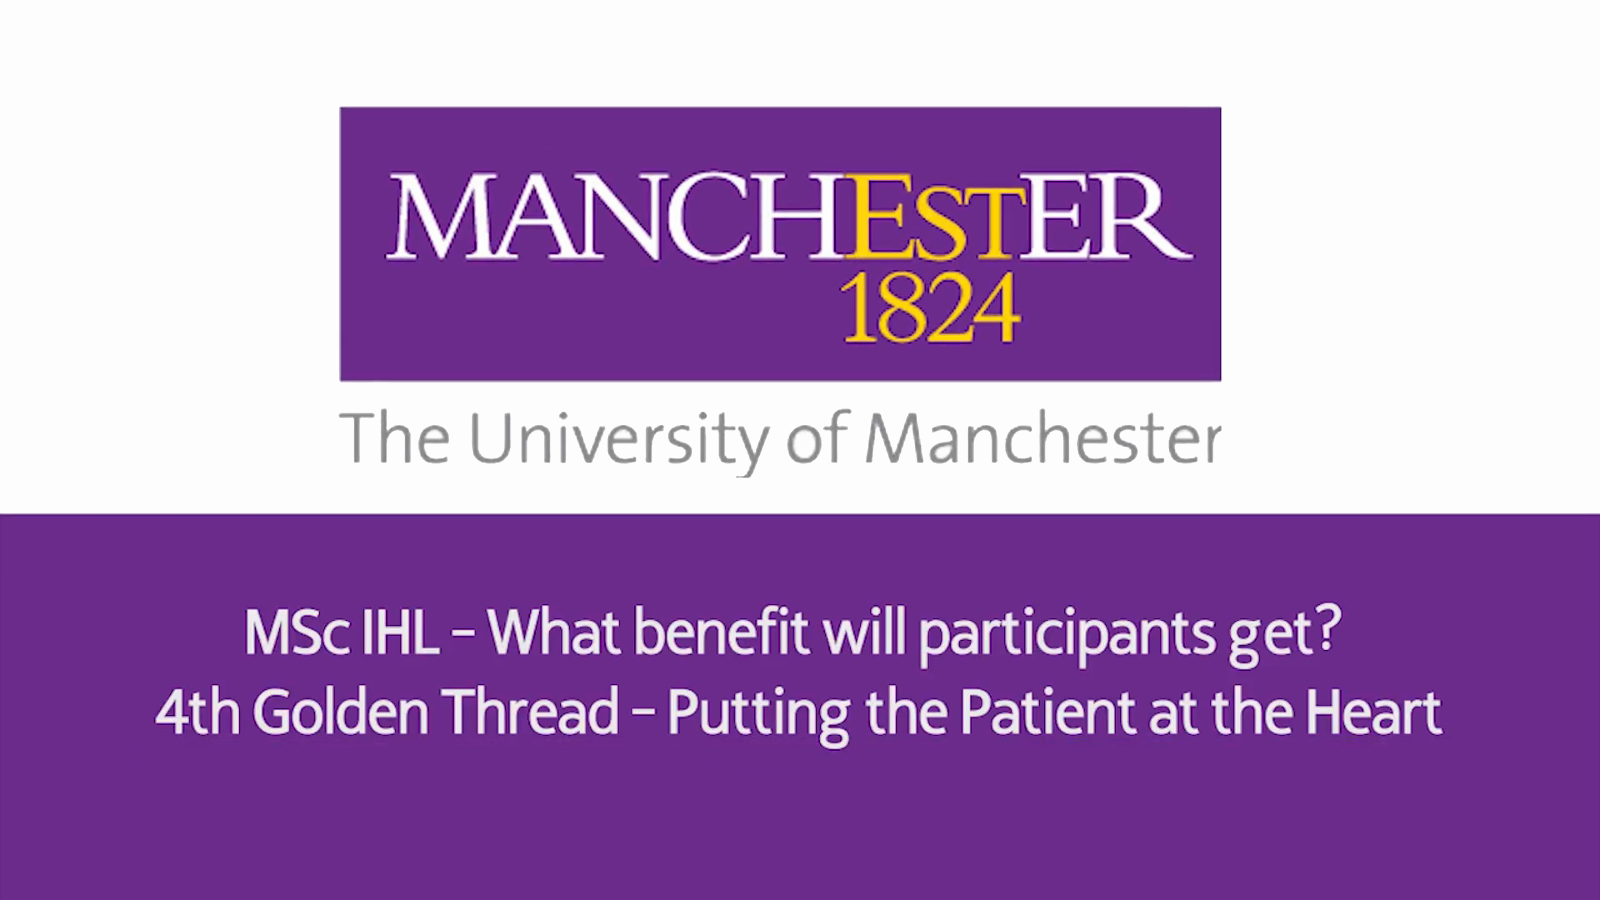 MSc IHL - What Benefits will Participants Get - 4th Golden Thread - Putting the Patient at the Heart